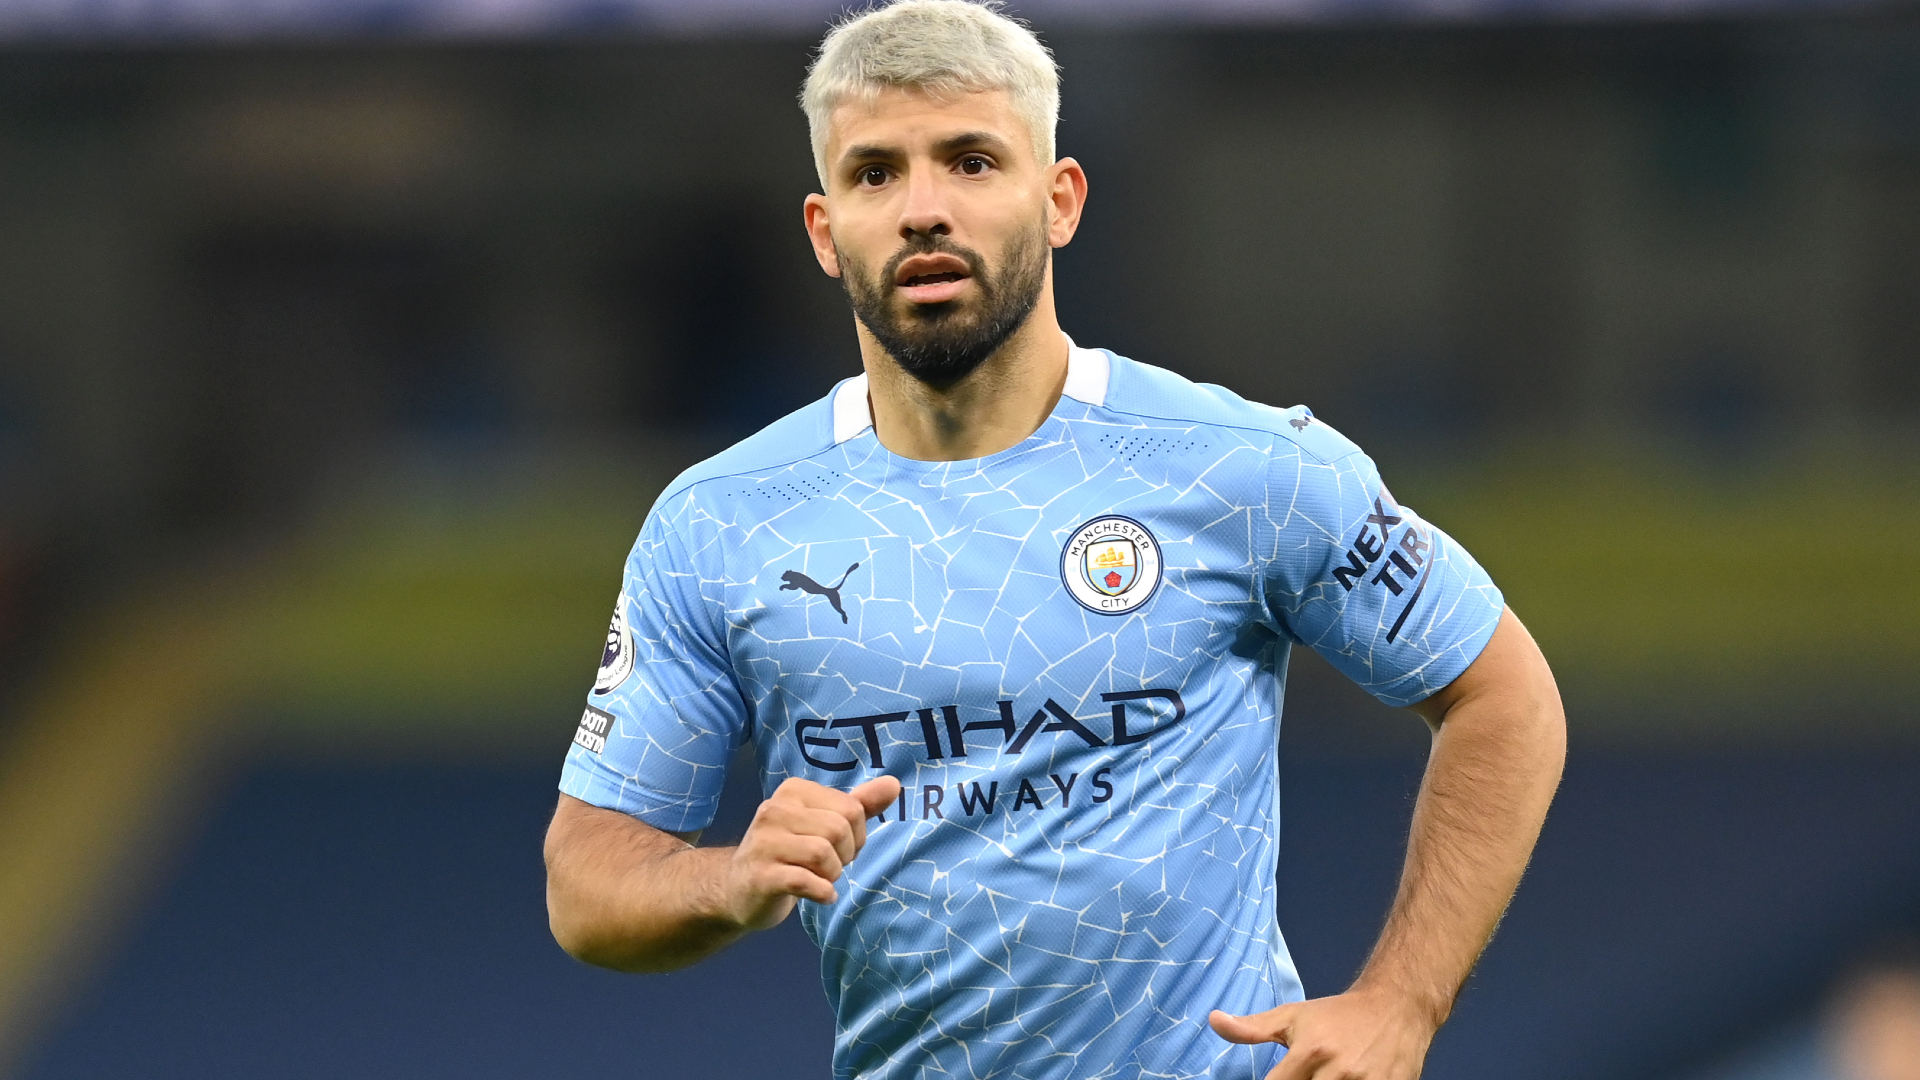 Guardiola provides Aguero fitness update ahead of Man City's FA Cup clash at Swansea